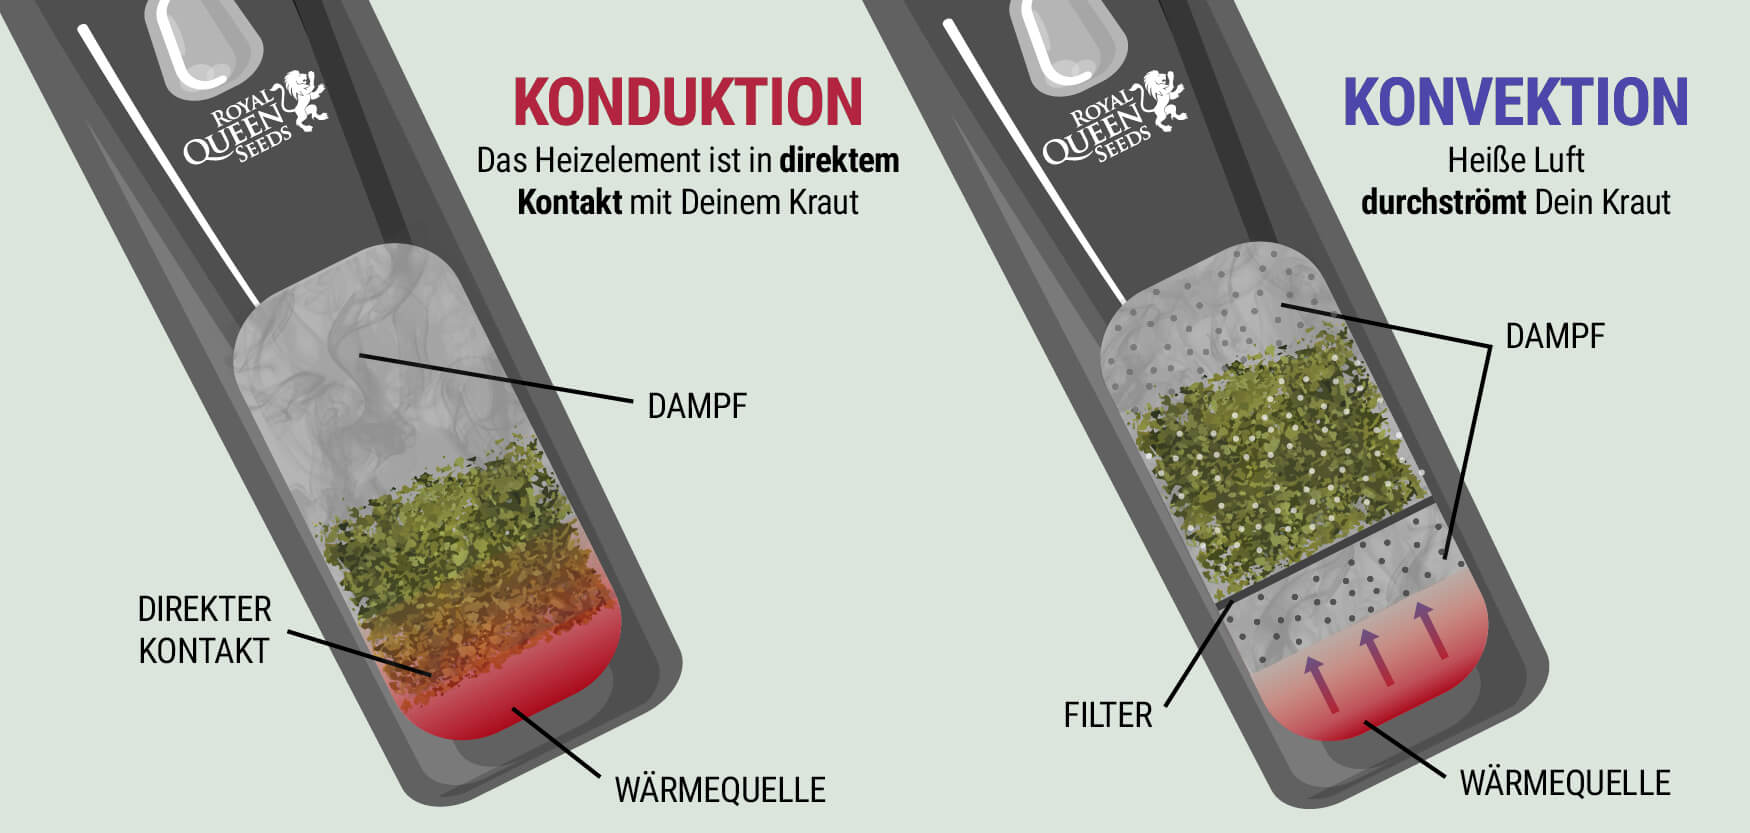 Konvektion Vs. Konduktion